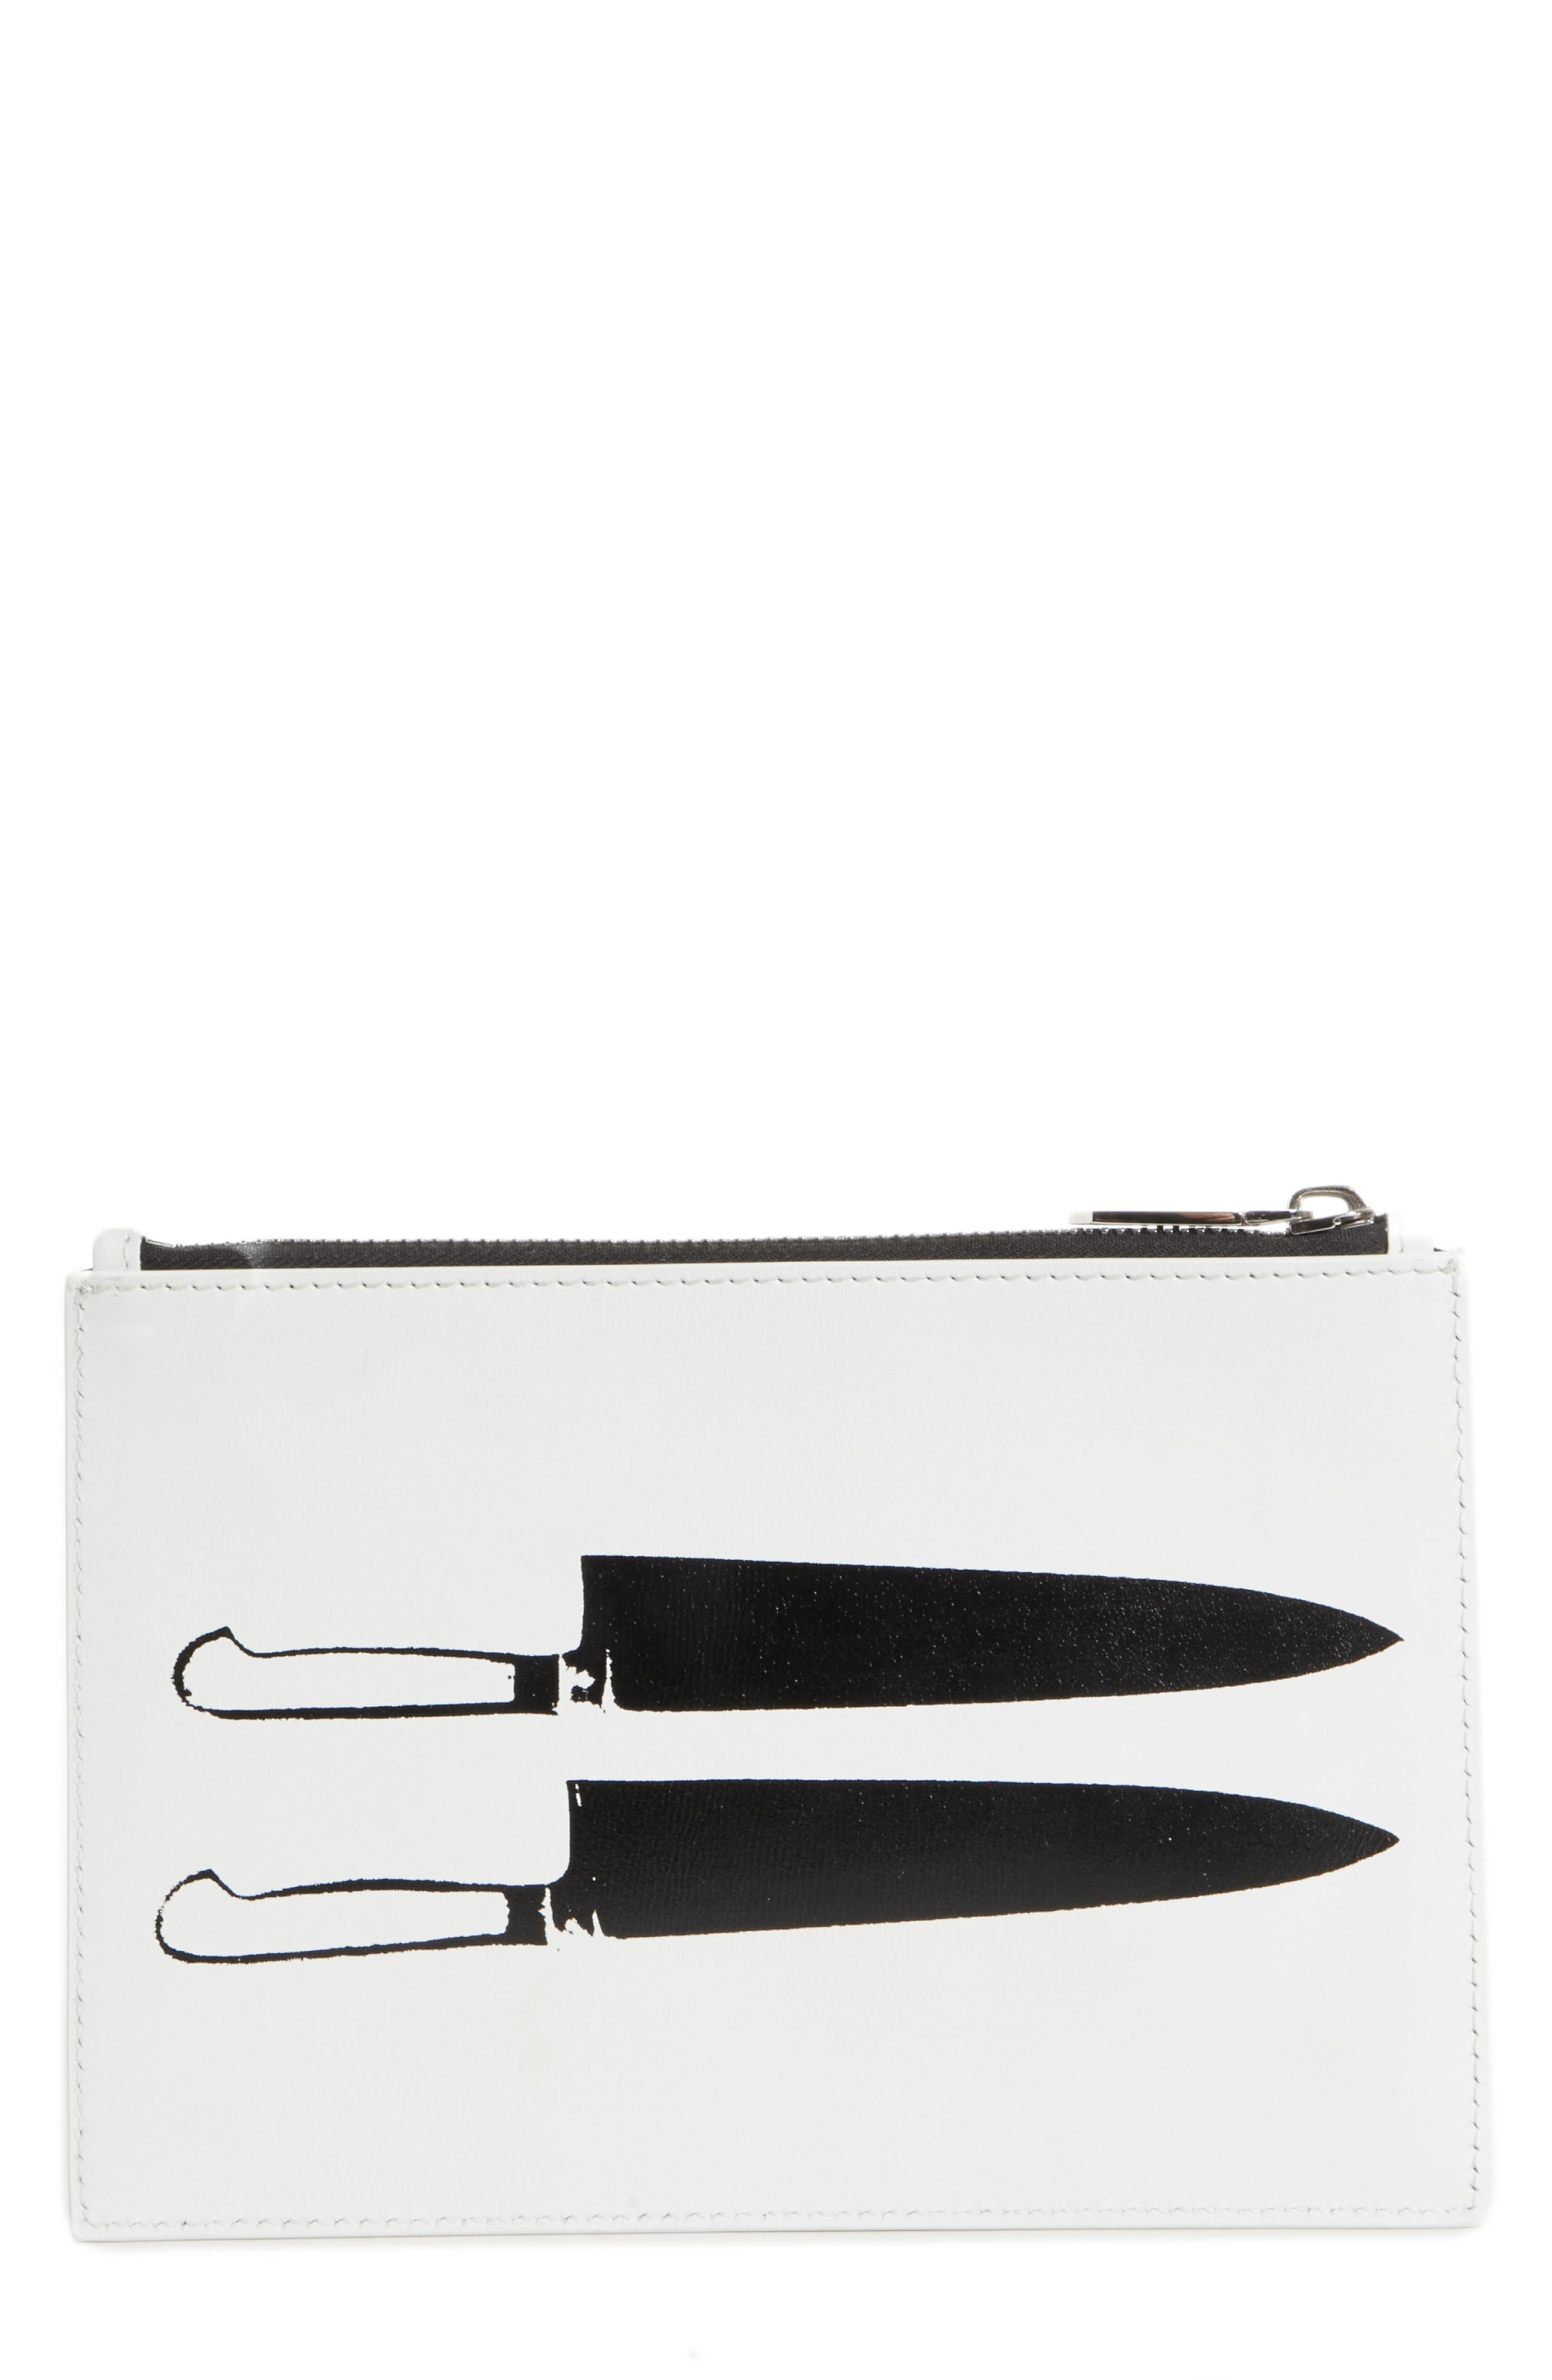 x Andy Warhol Foundation Knives Leather Pouch,                         Main,                         color, 100